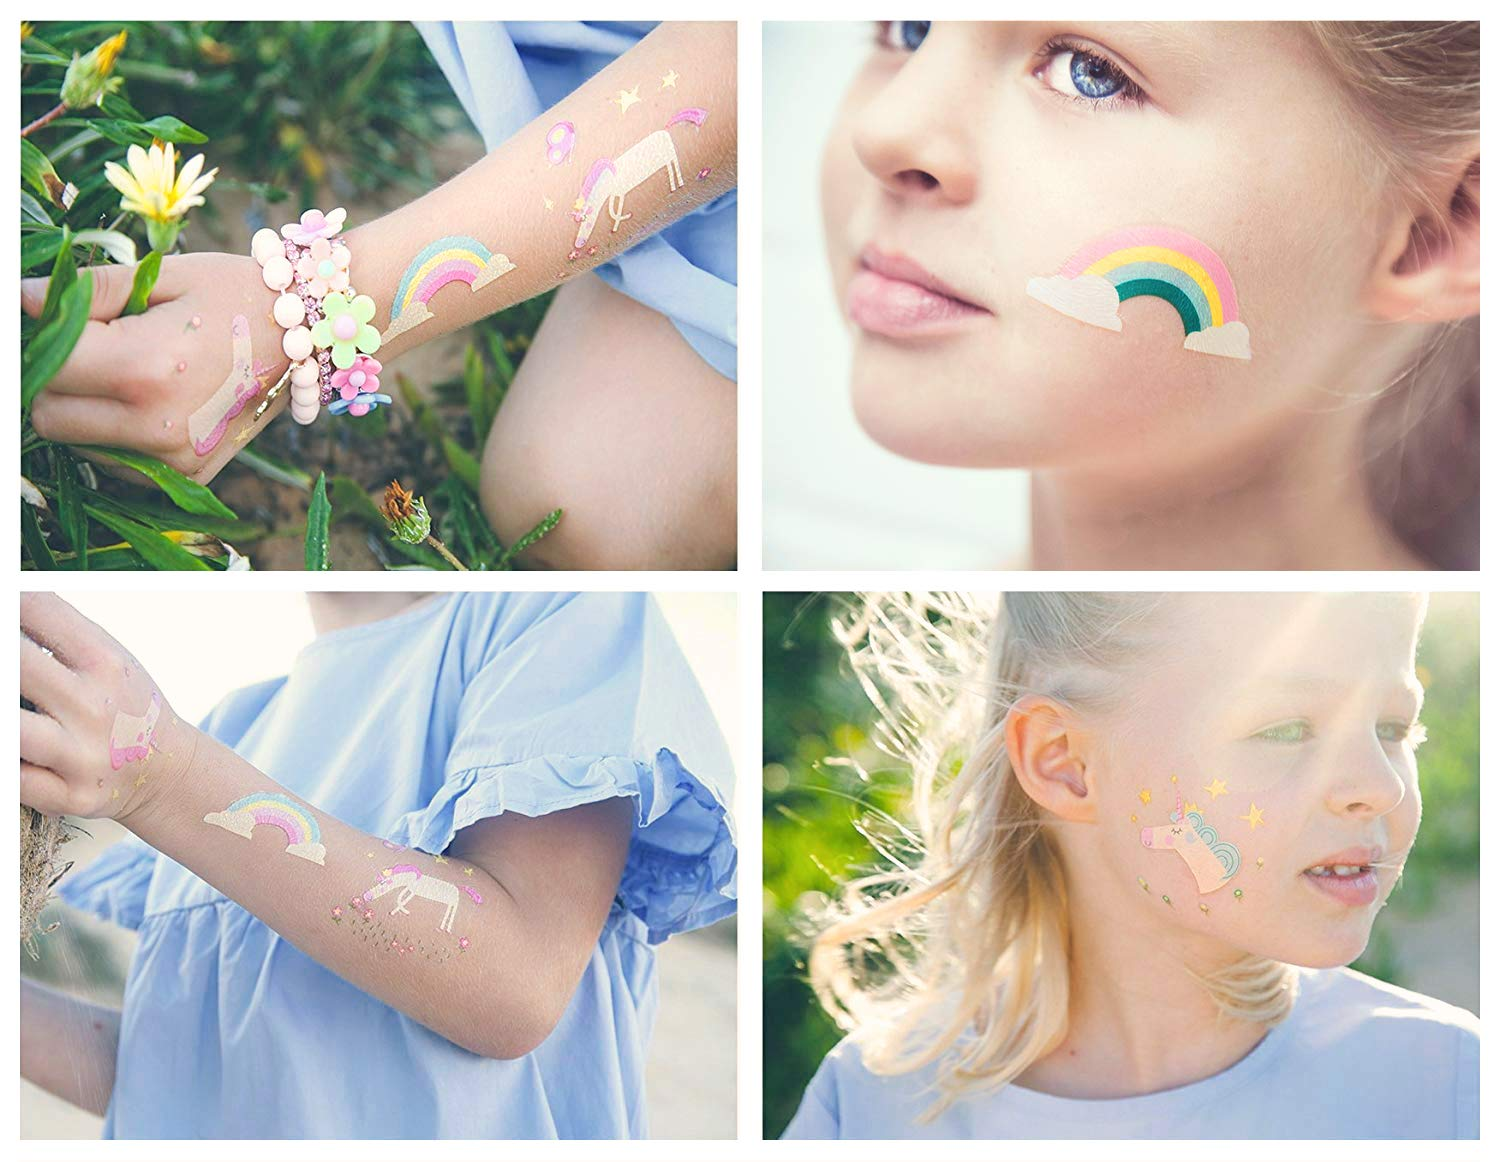 Unicorn Temporary Tattoos for Kids - Unicorn Party Favors, Birthday Decorations and Supplies - Non-toxic and Waterproof - Pack of 16 sheets (32 Fake Tattoos) 5